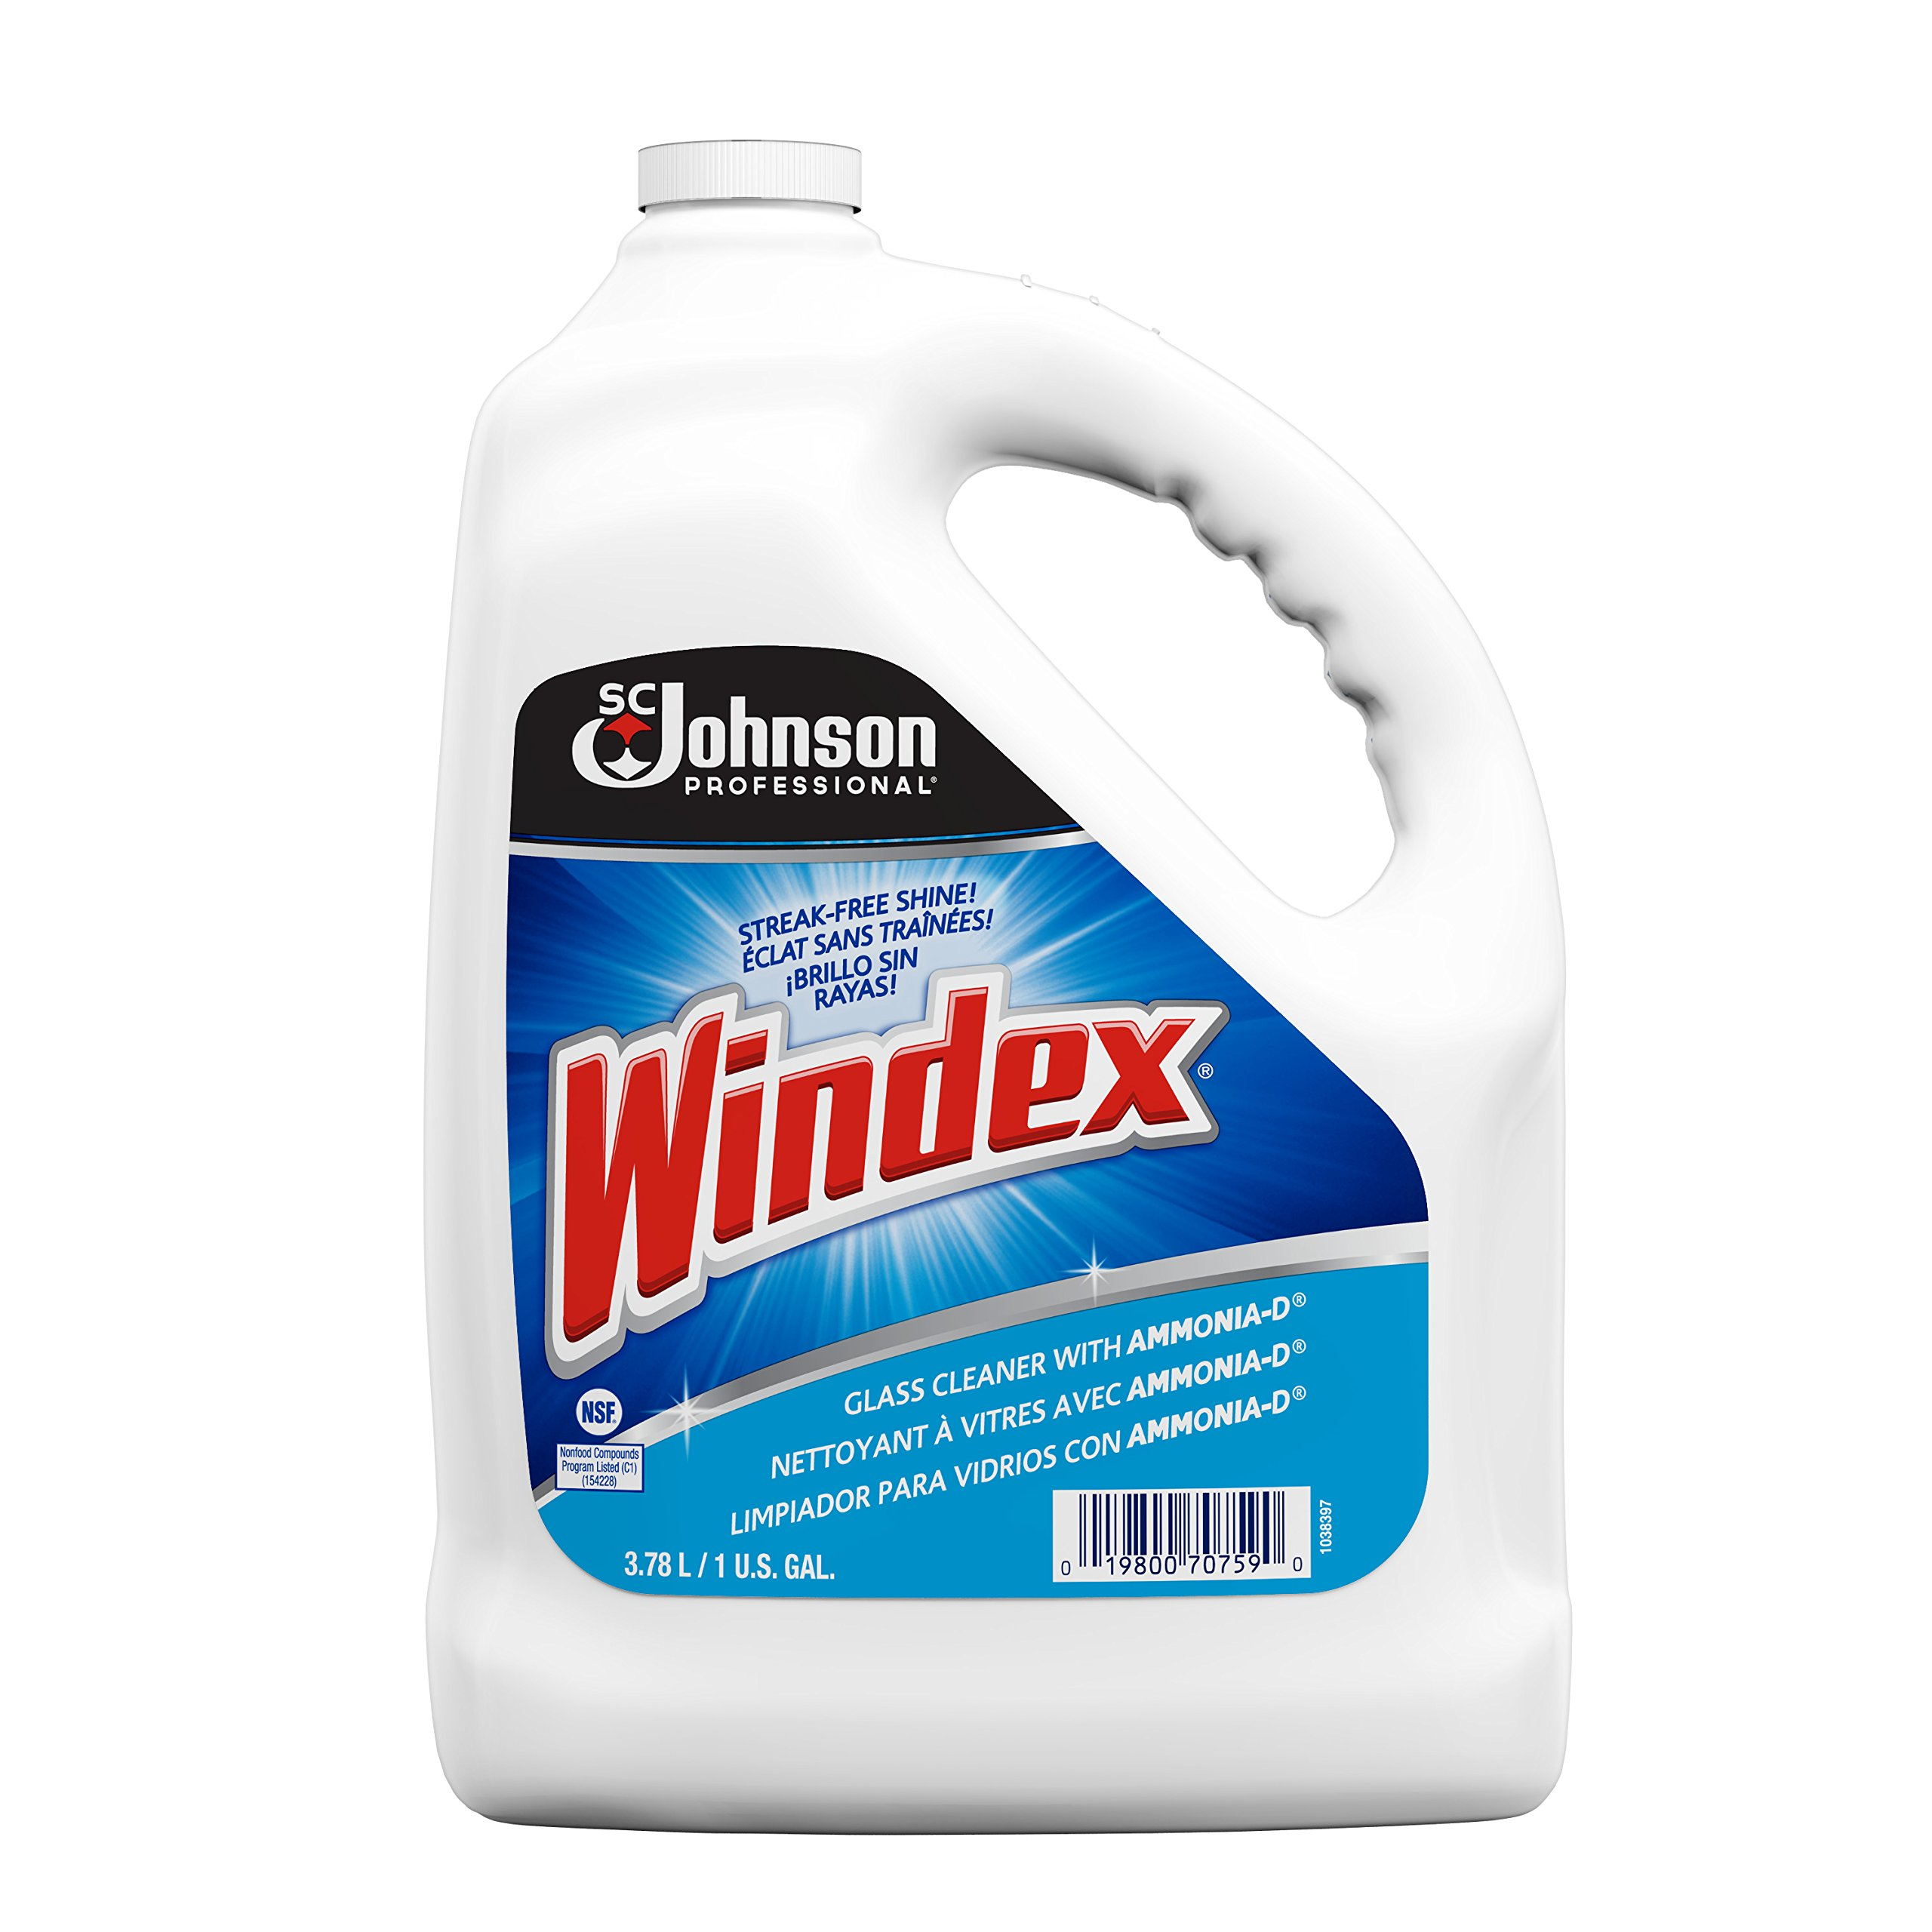 Windex Glass Cleaner 5 Gallon